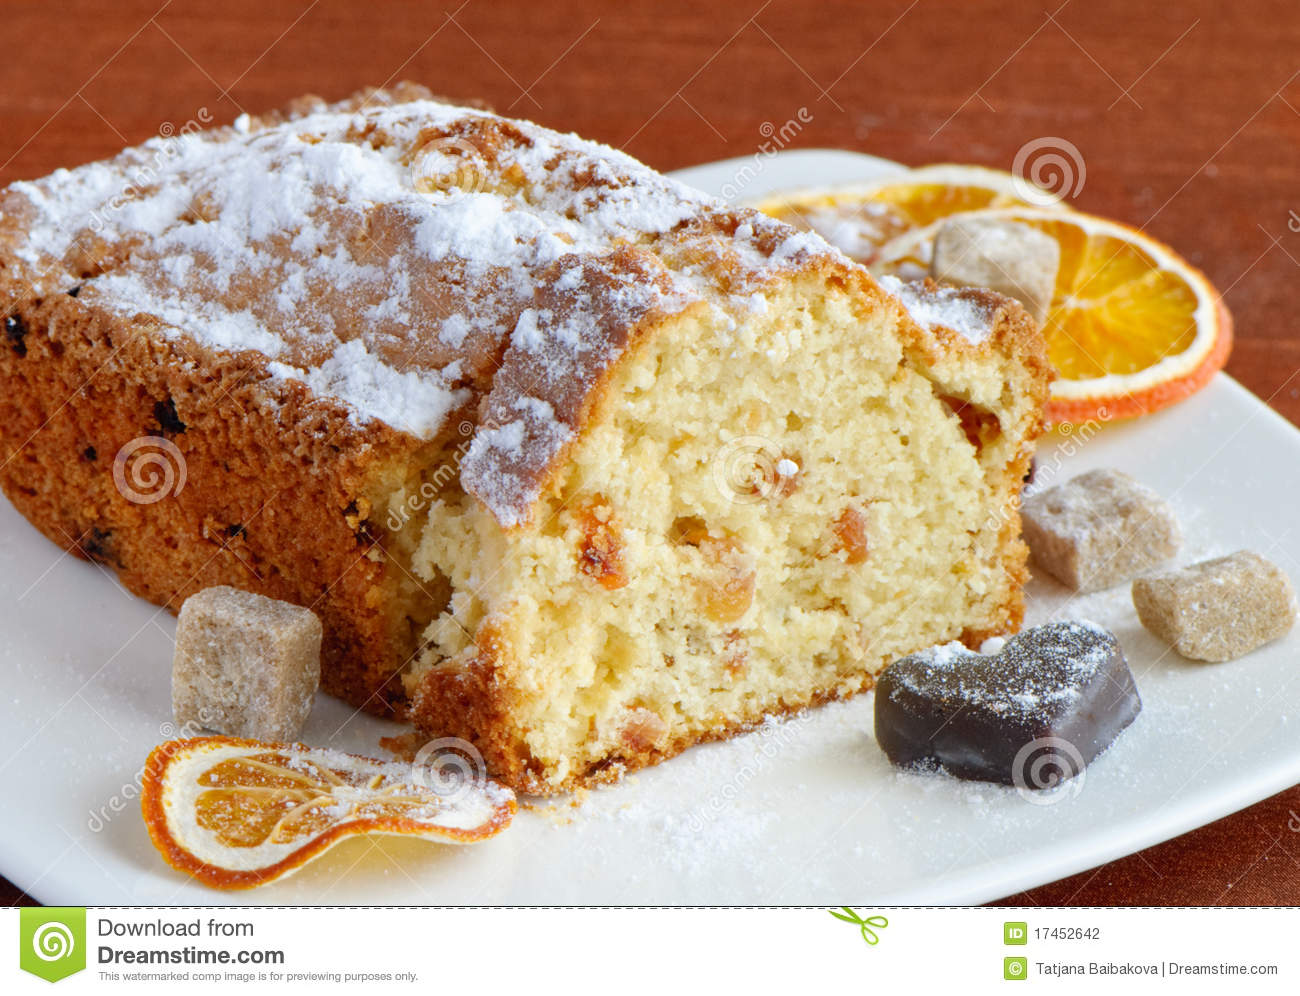 Download Cake with raisins stock photo. Image of sponge, confectionery - 17452642